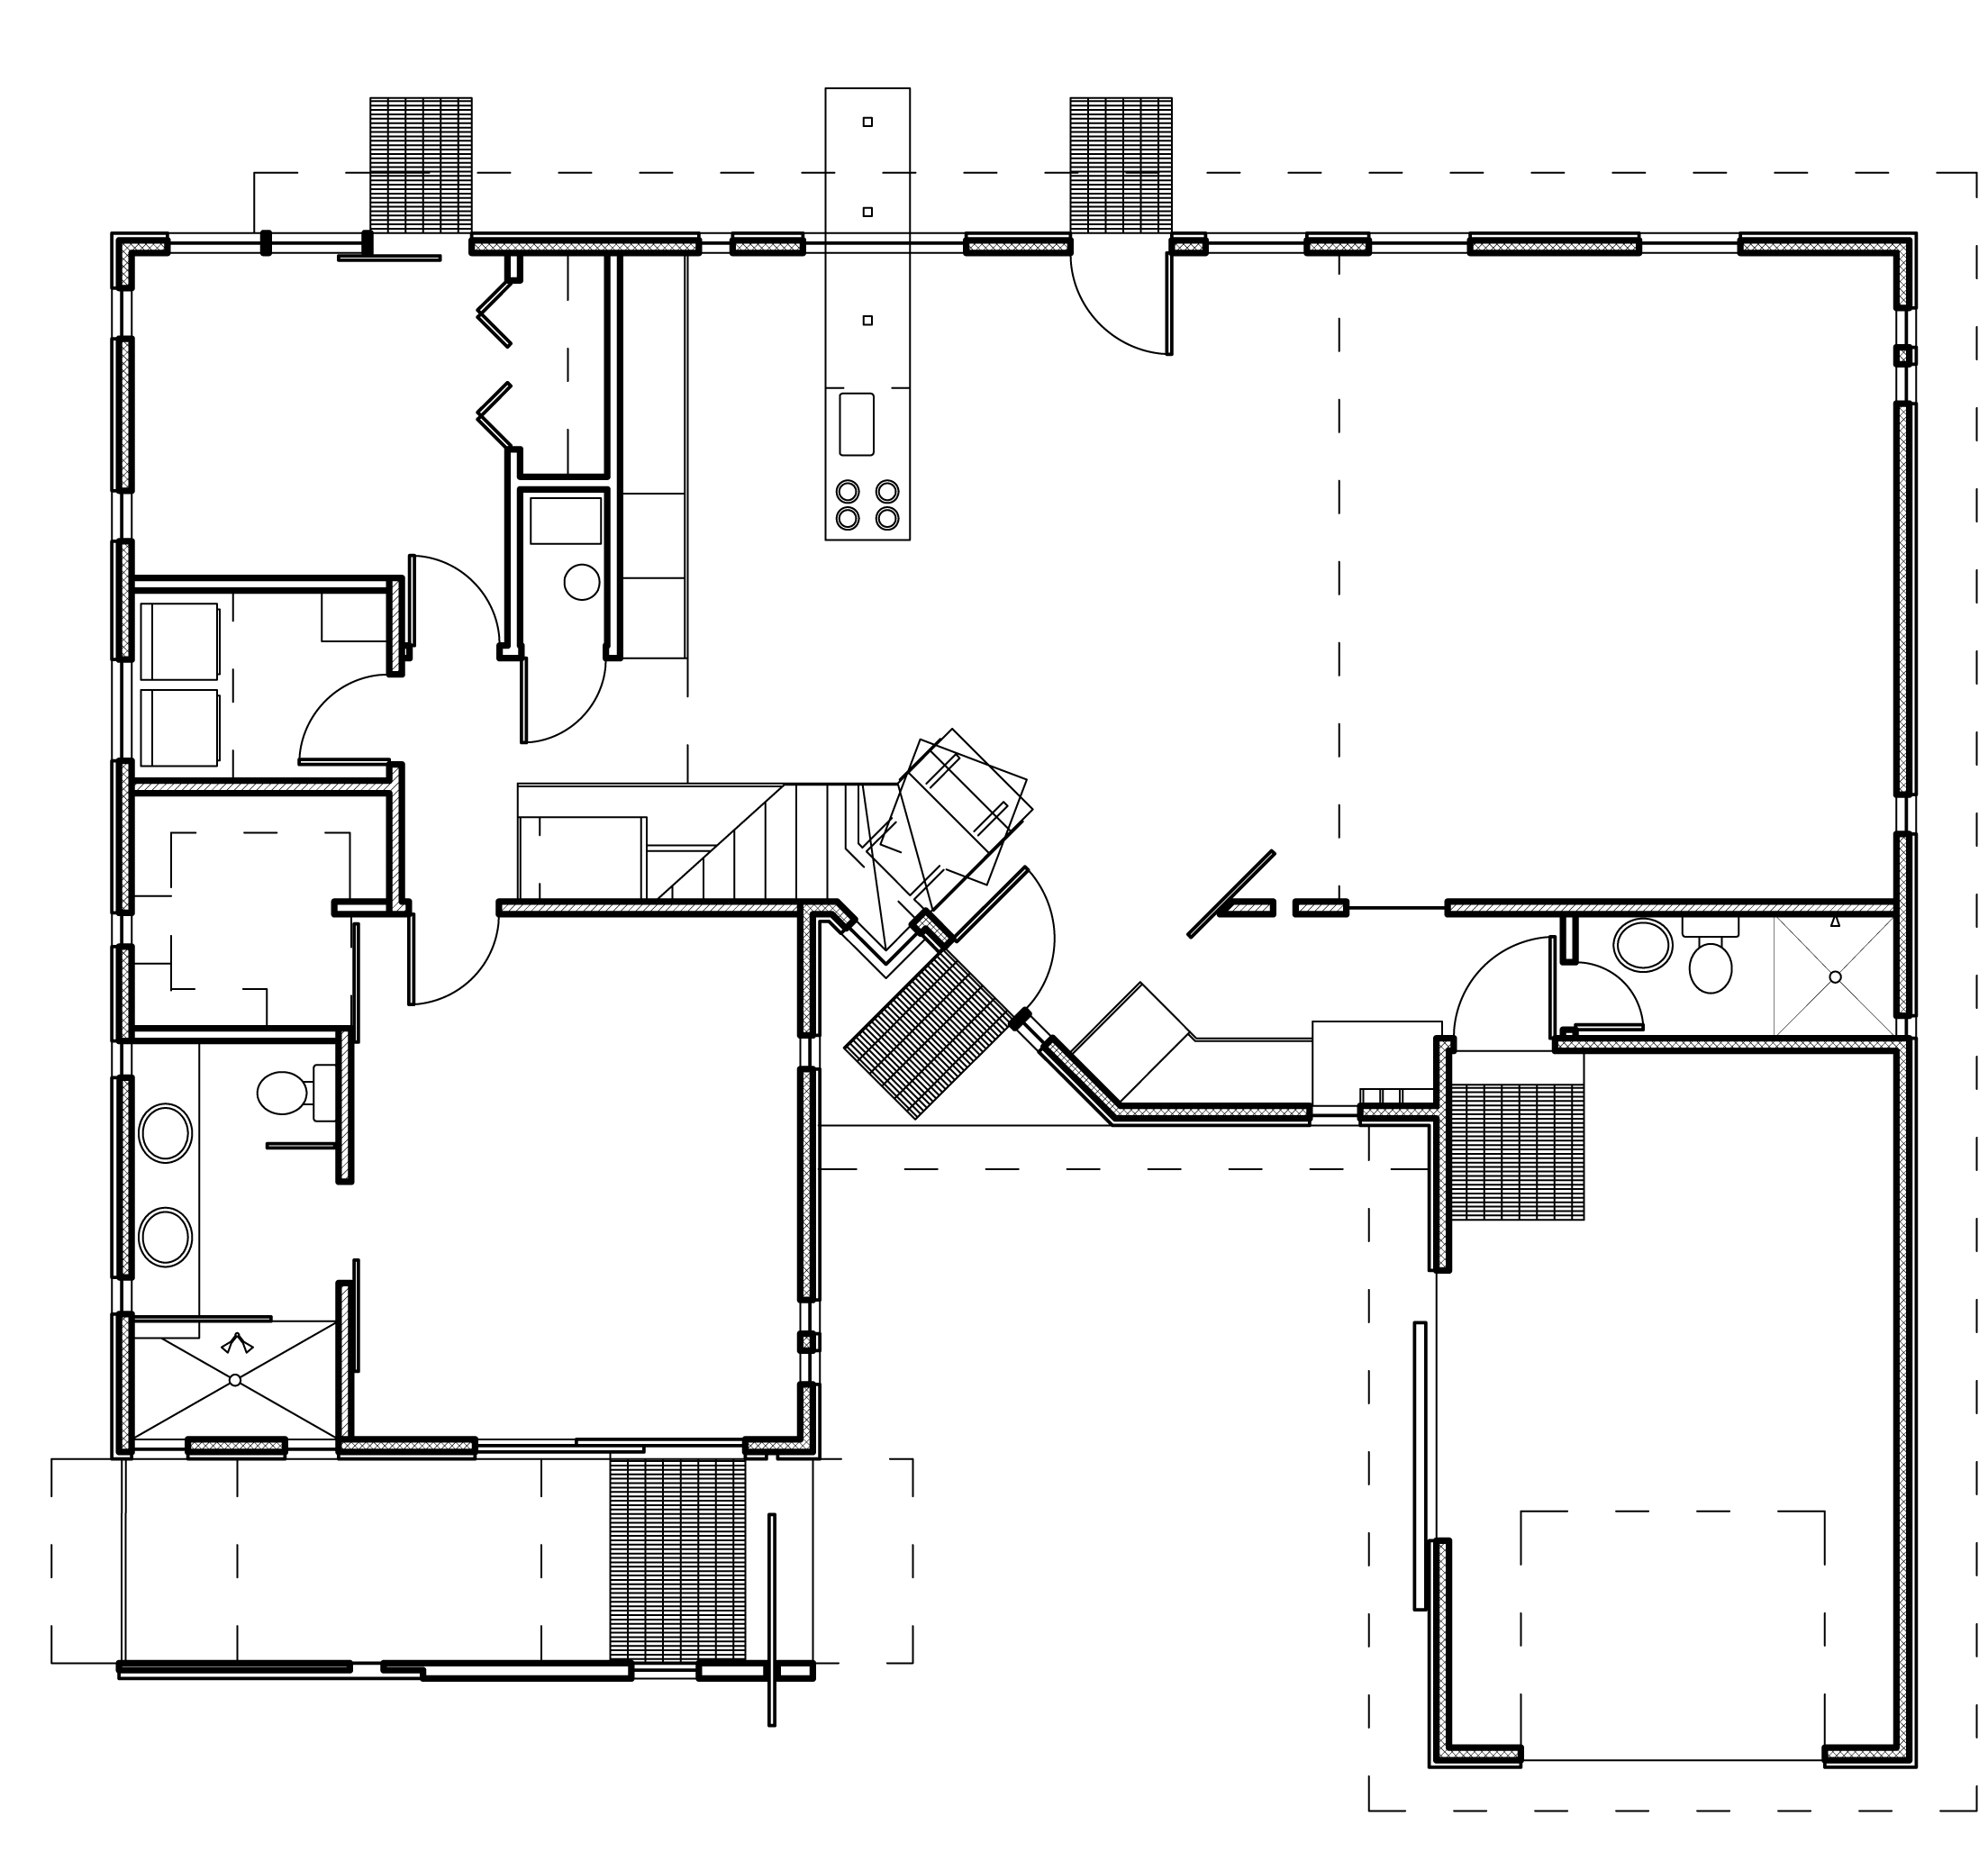 Modern house plans contemporary home designs floor plan 03 for Modern house design plans